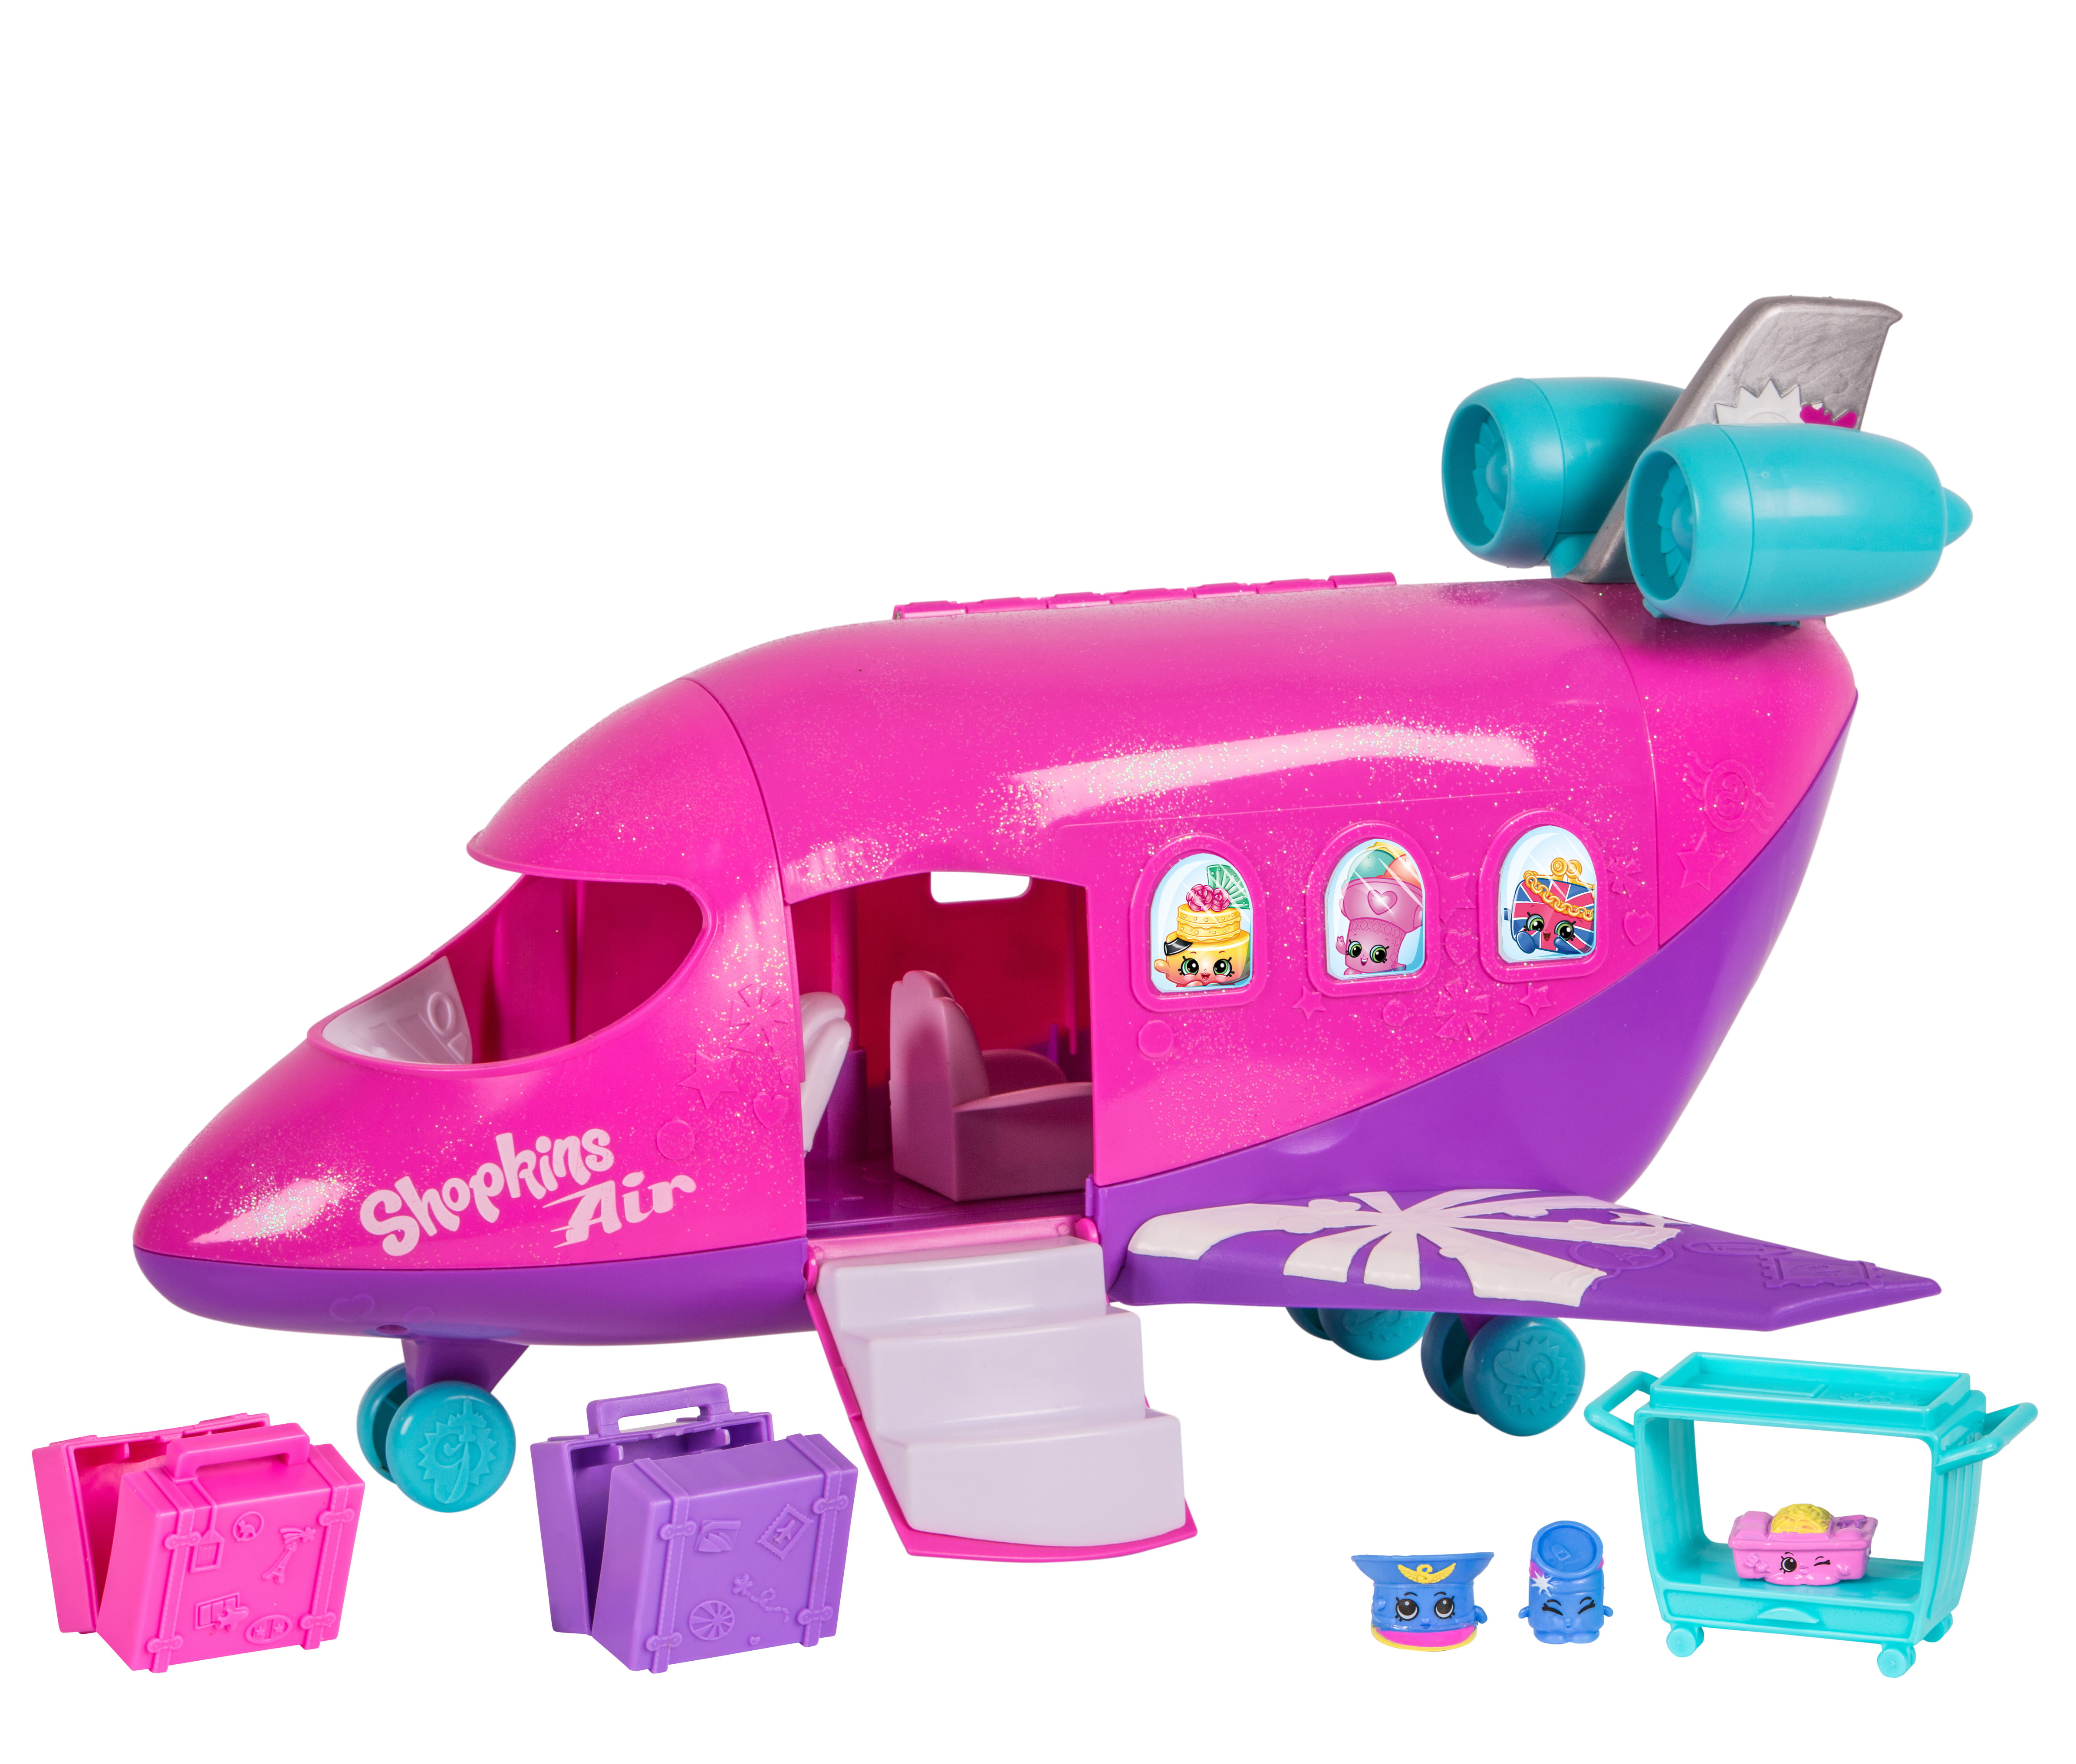 Shopkins World Vacation Plane Jet Playset With 3 Shopkin